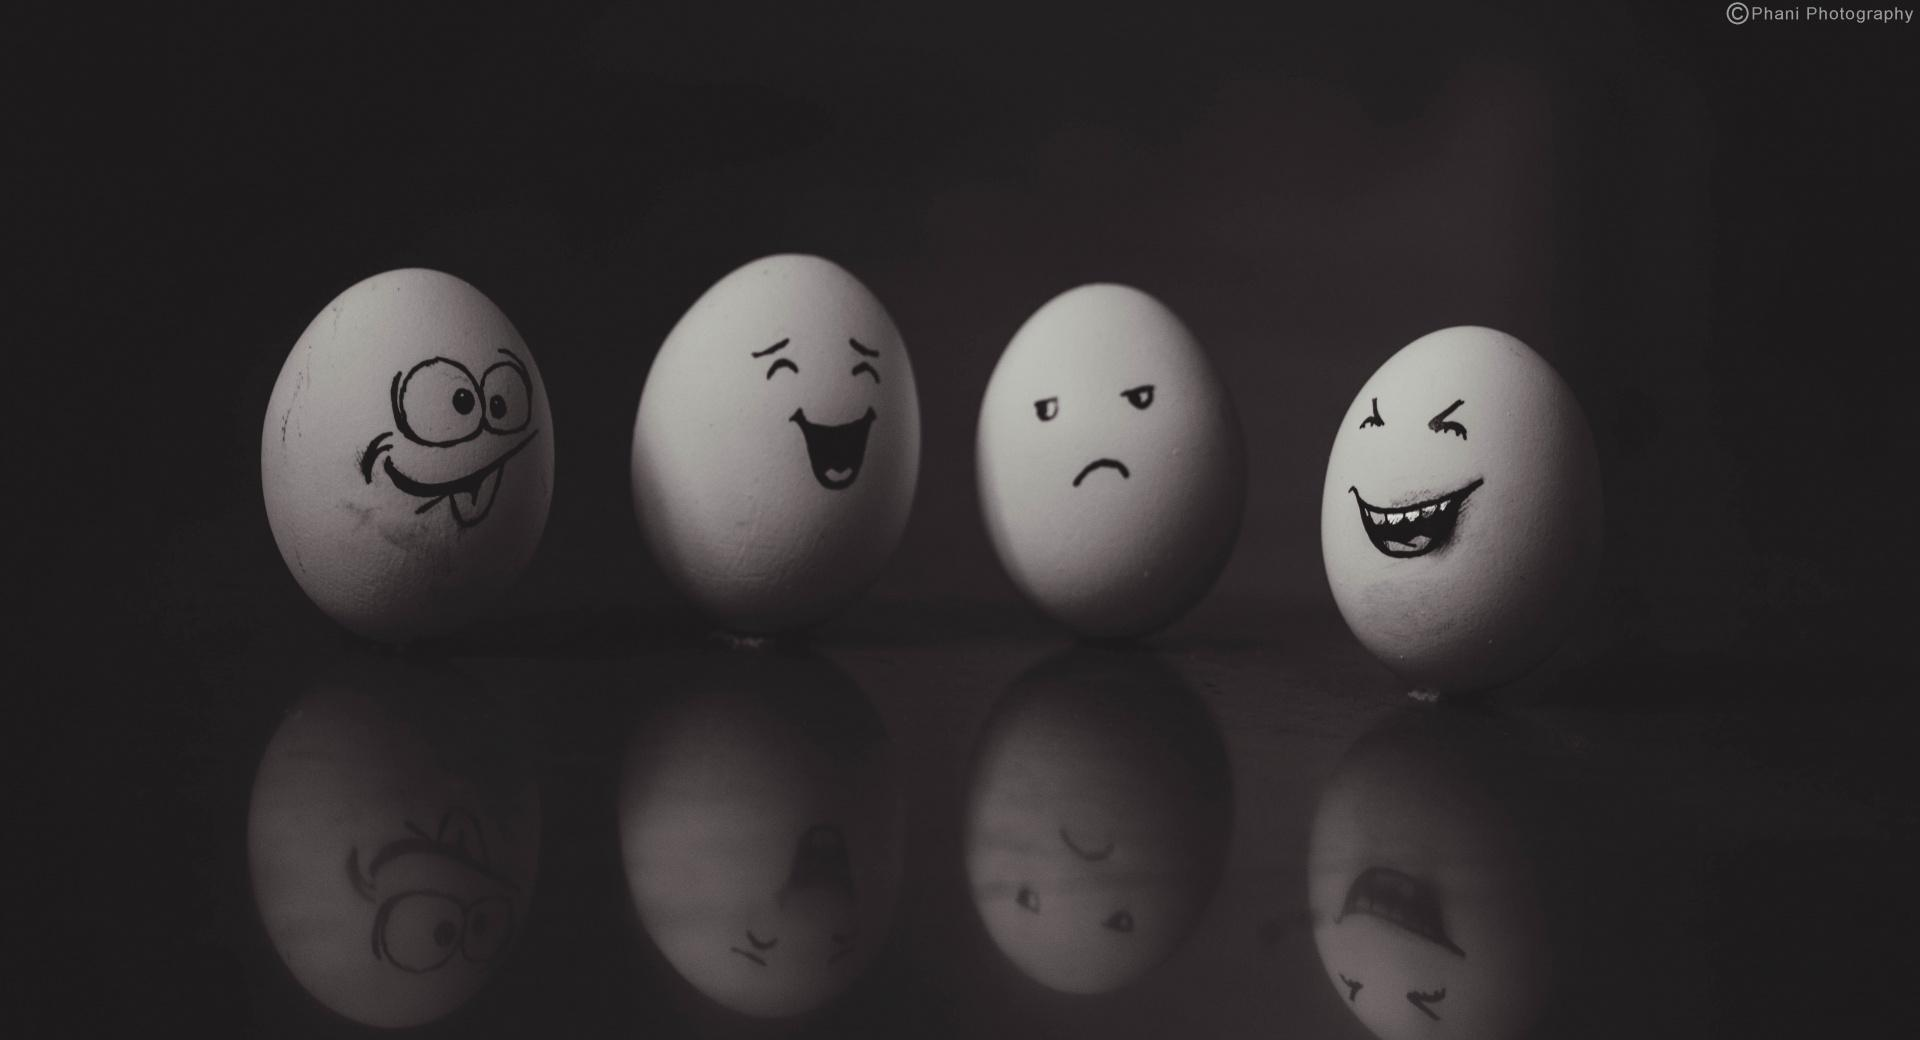 Funny Eggs 2 wallpapers HD quality